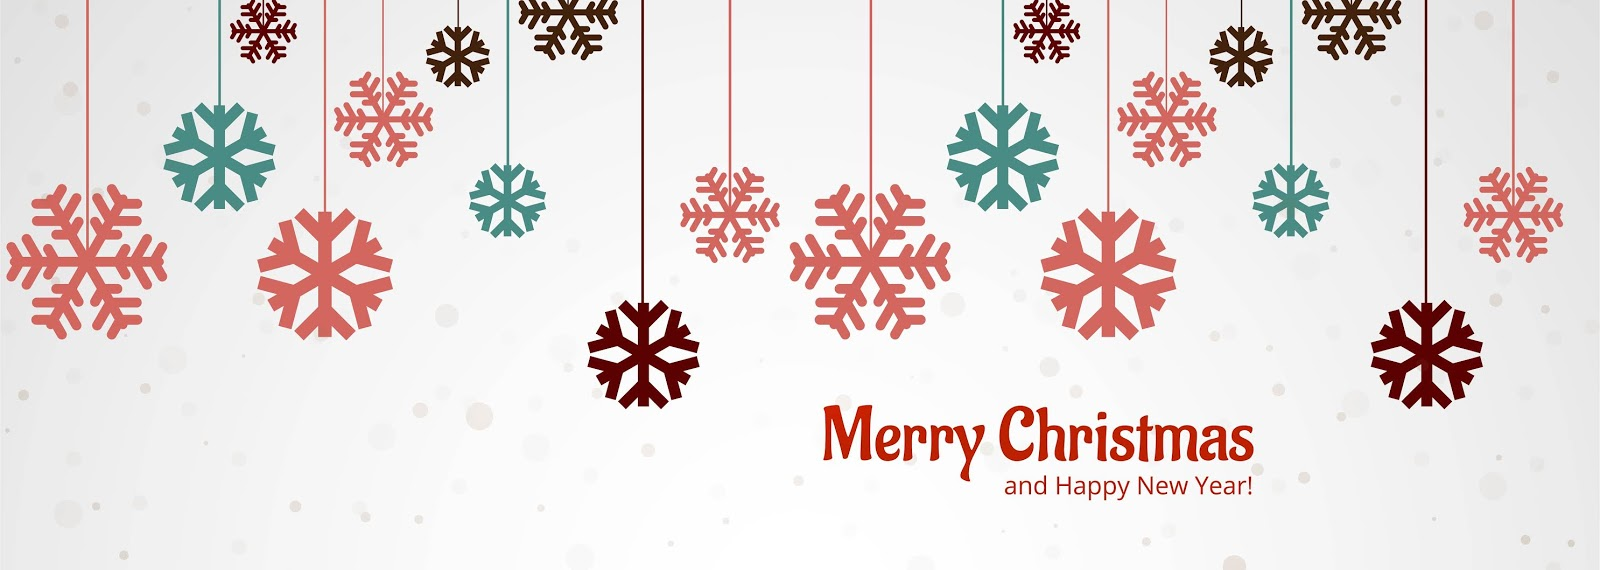 Beautiful Merry Christmas Snowflake Banner Design Vector Free Download Vector CDR, AI, EPS and PNG Formats